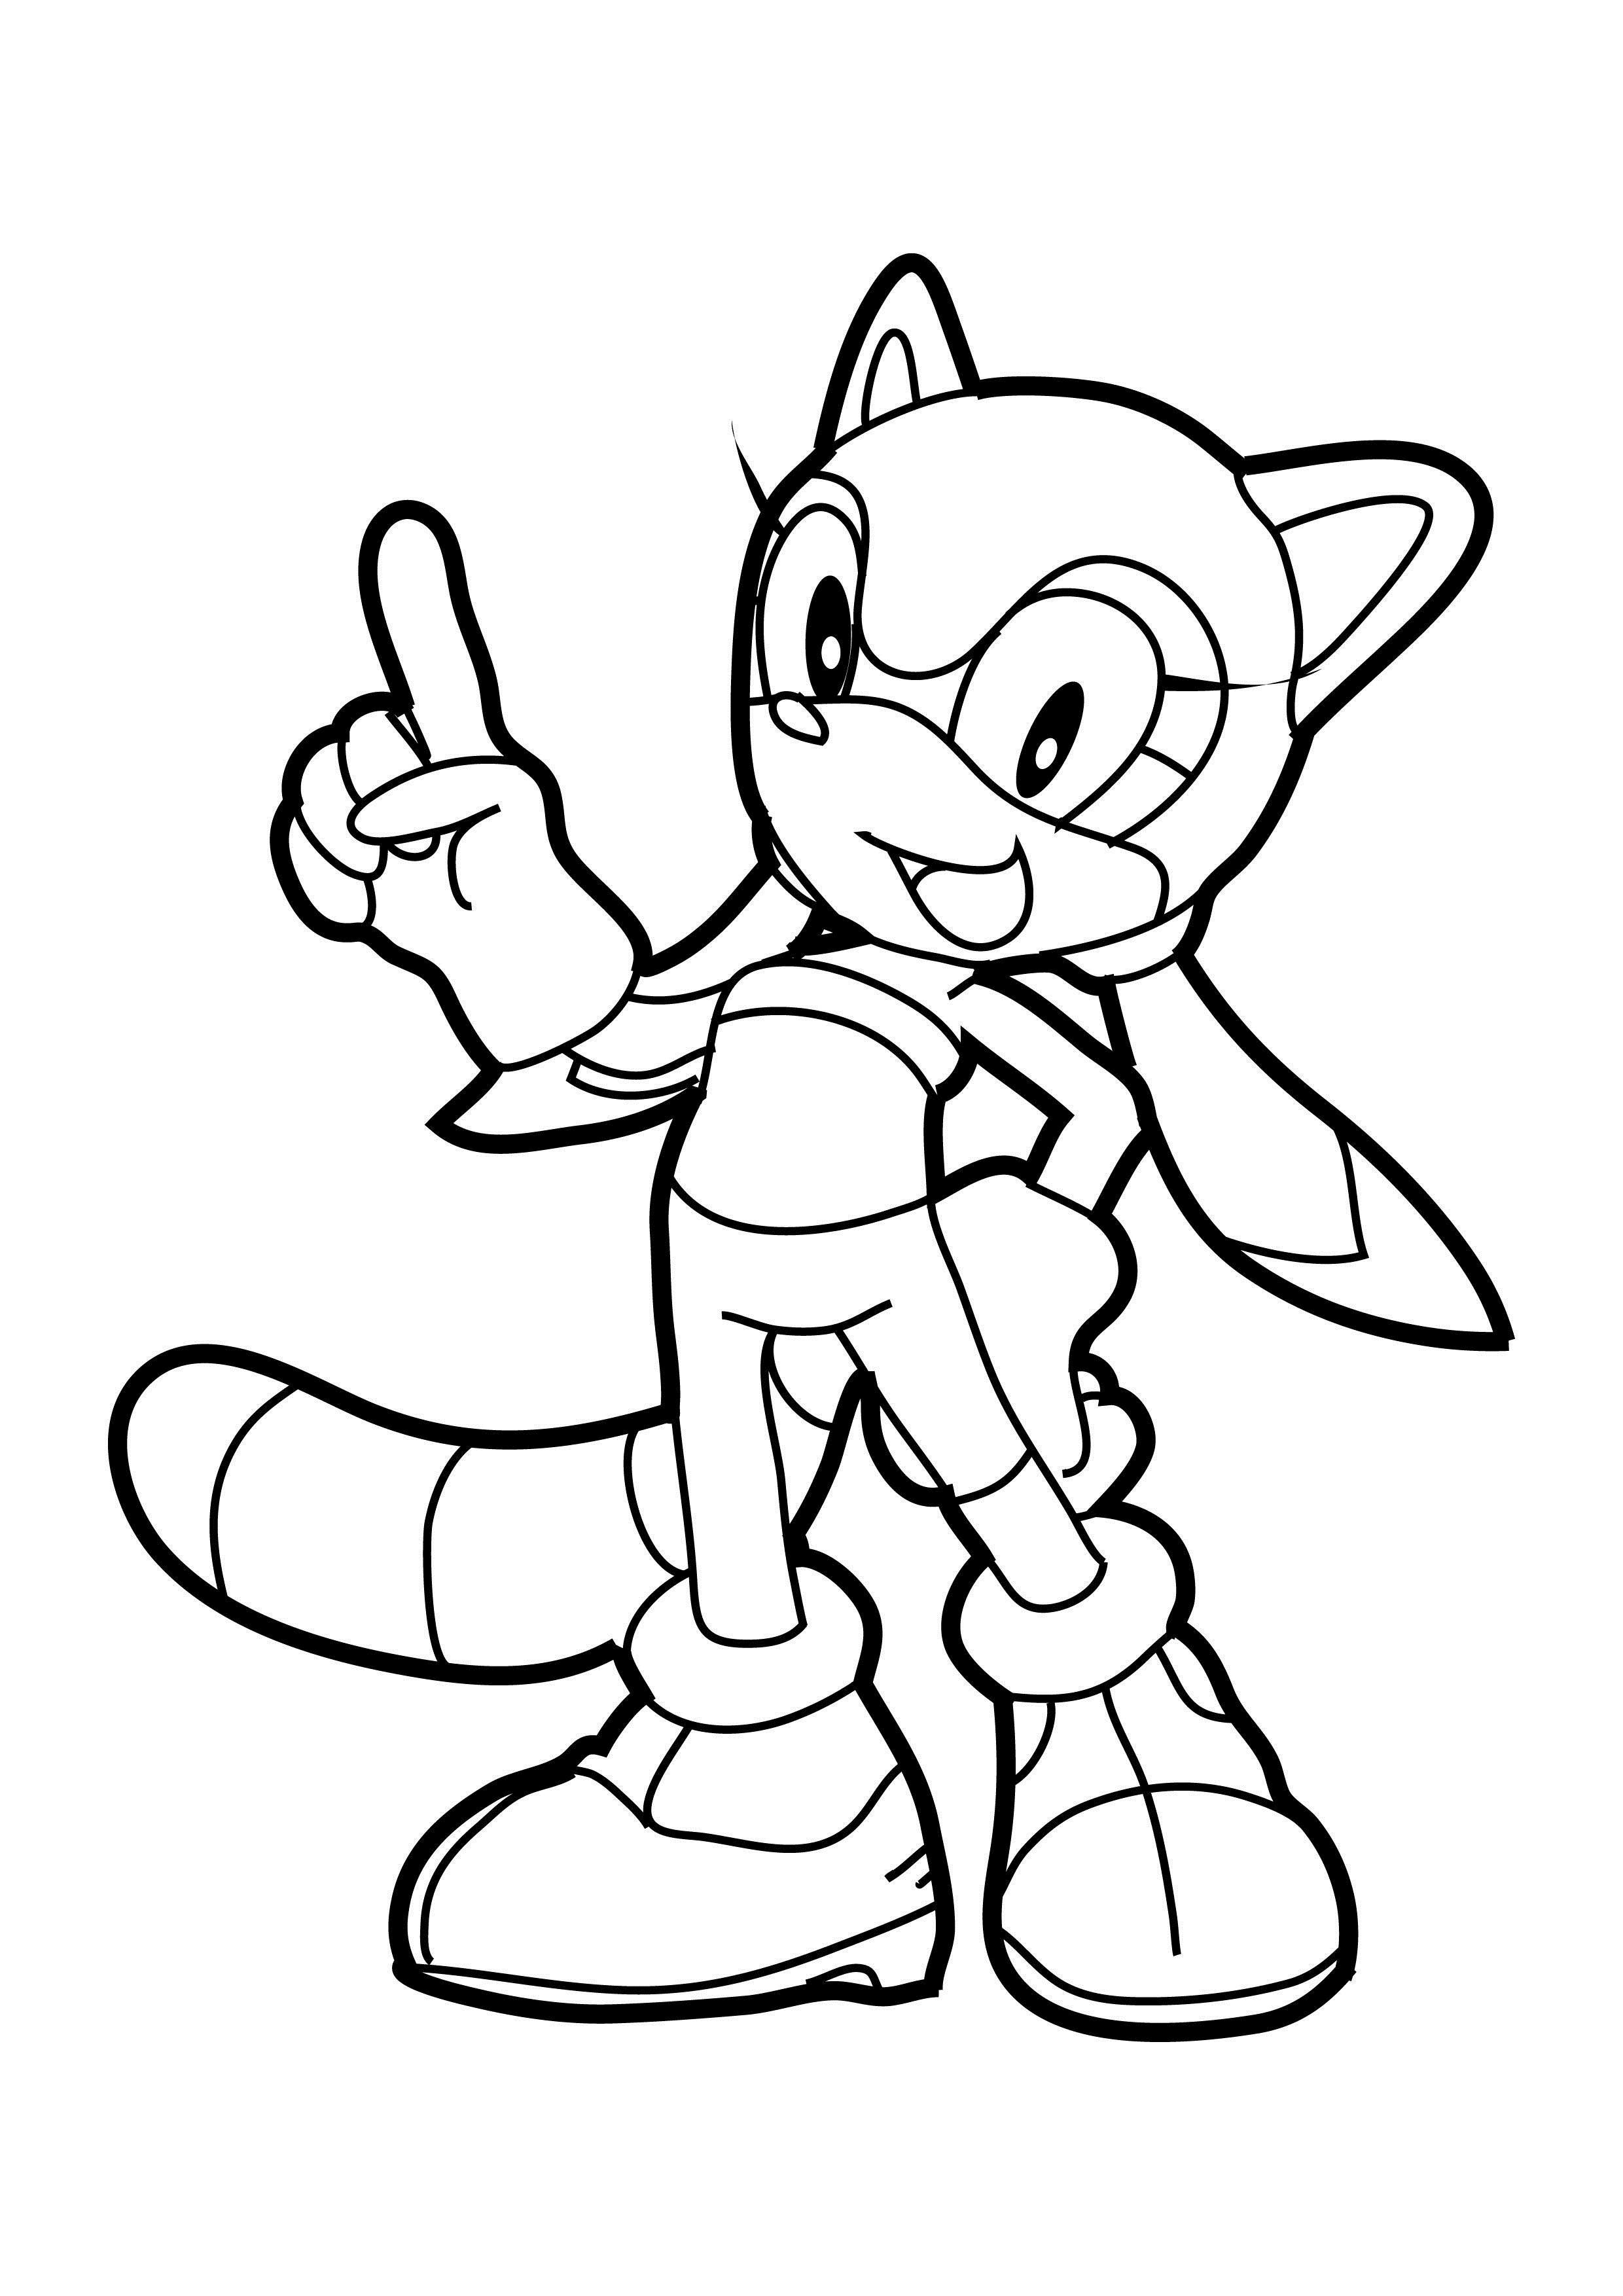 Super Sonic Coloring Pages To Print Best Sonic Coloring Pages Mcoloring Coloring Pages To Print Coloring Pages Valentine Coloring Pages